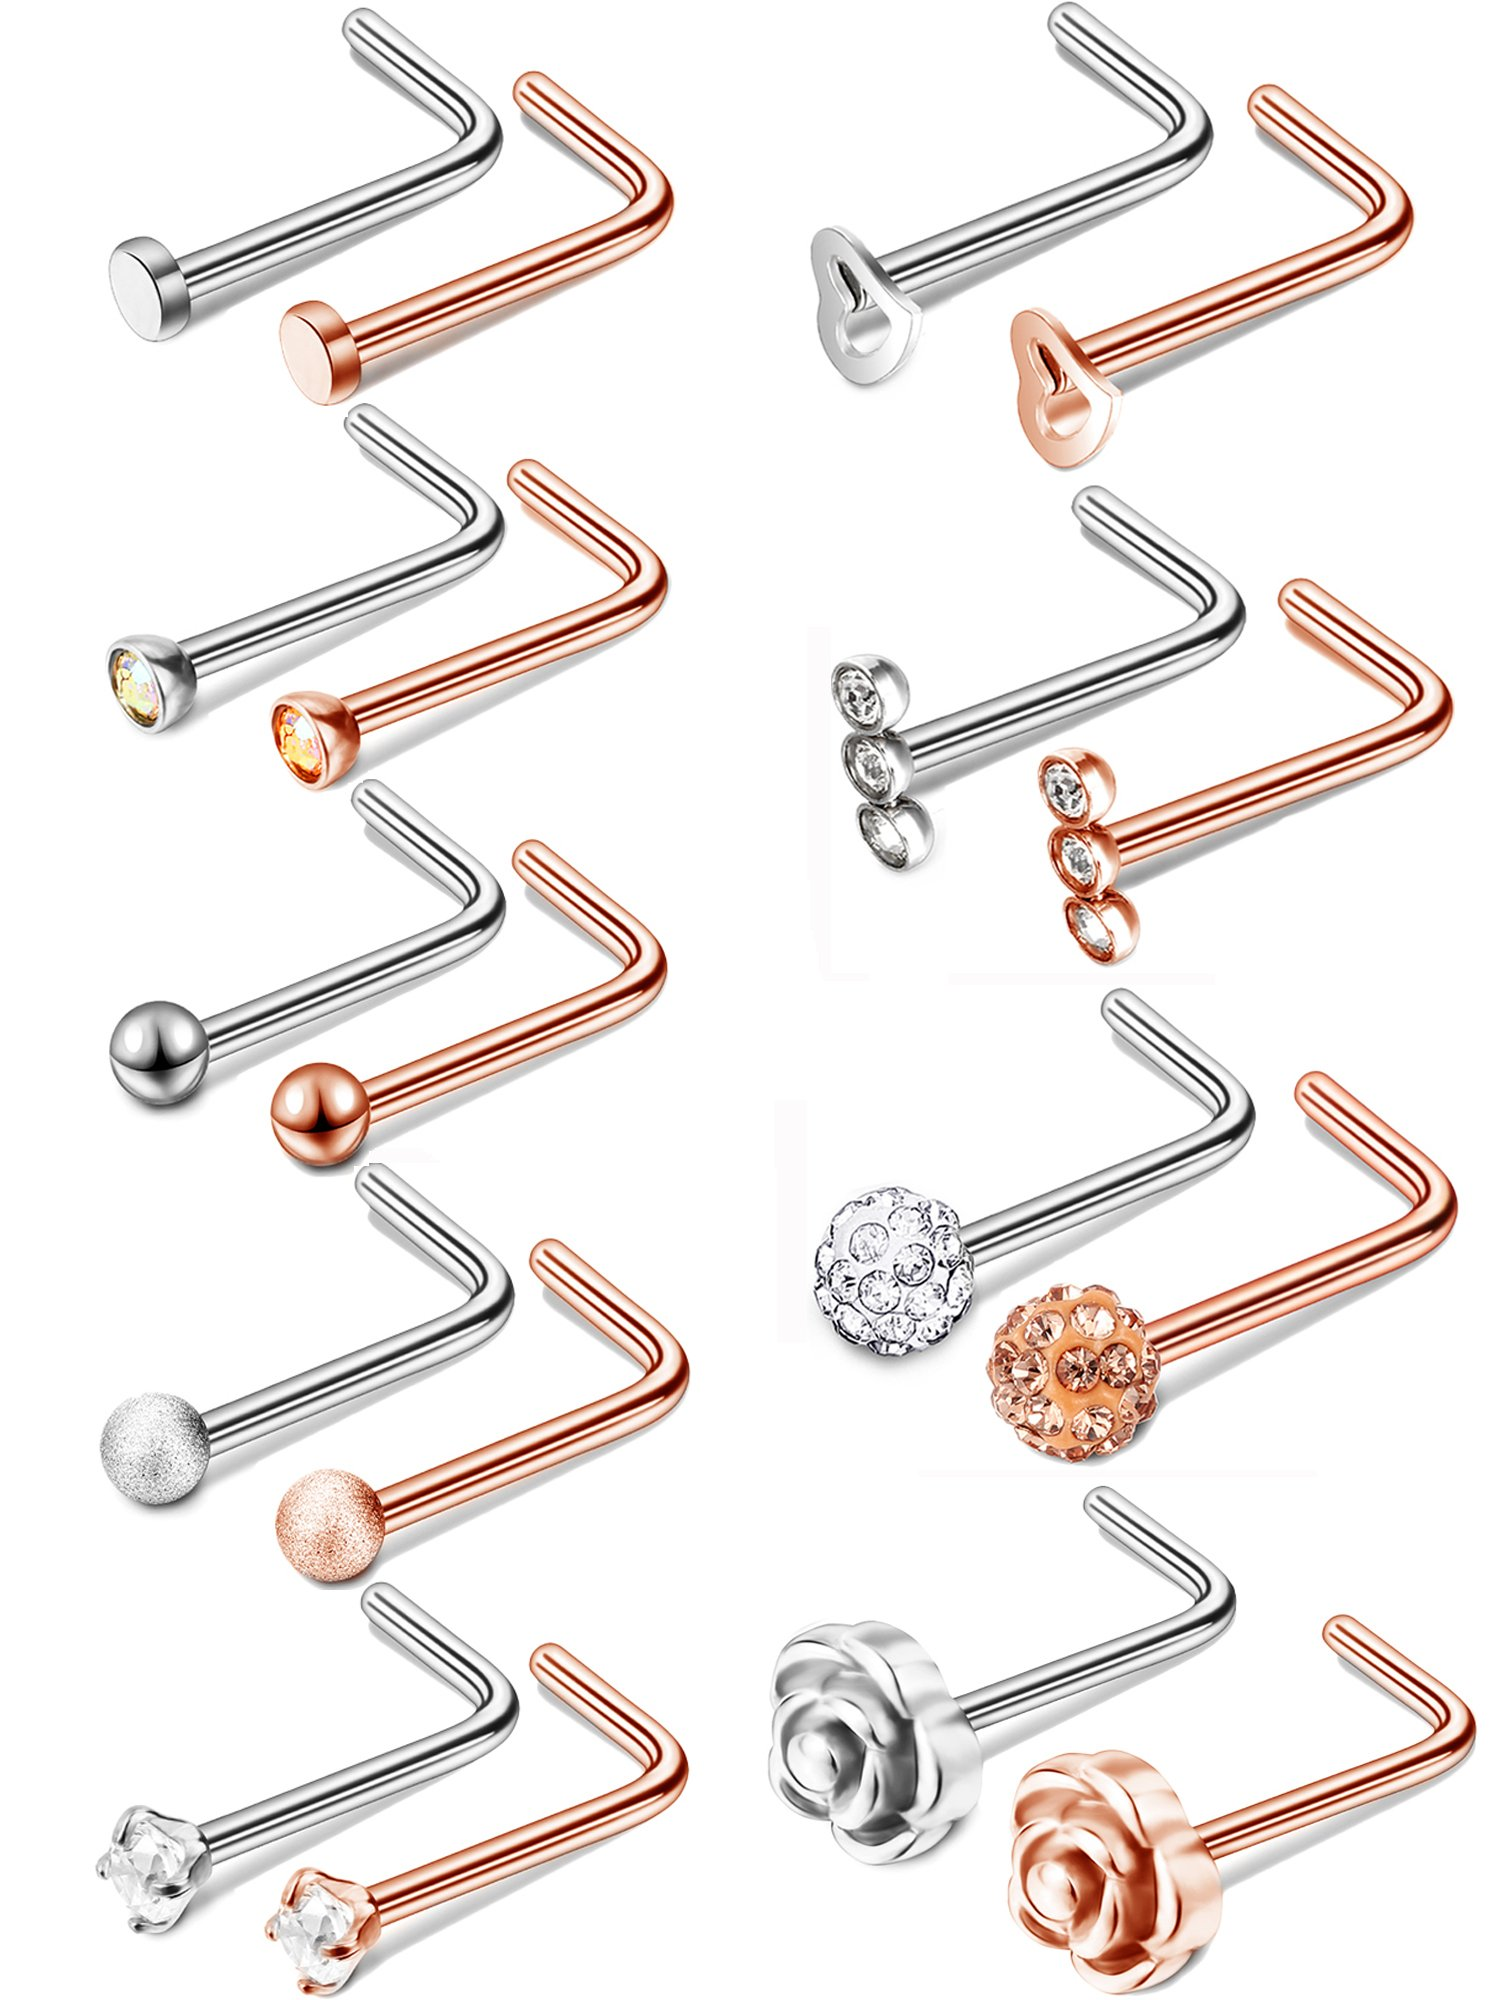 Jovitec 18 Pieces 20G L Shaped Labret Stainless Steel Nose Studs Cubic Zirconia Body Piercing Jewelry, 9 Styles (Rose Gold, Steel Color)